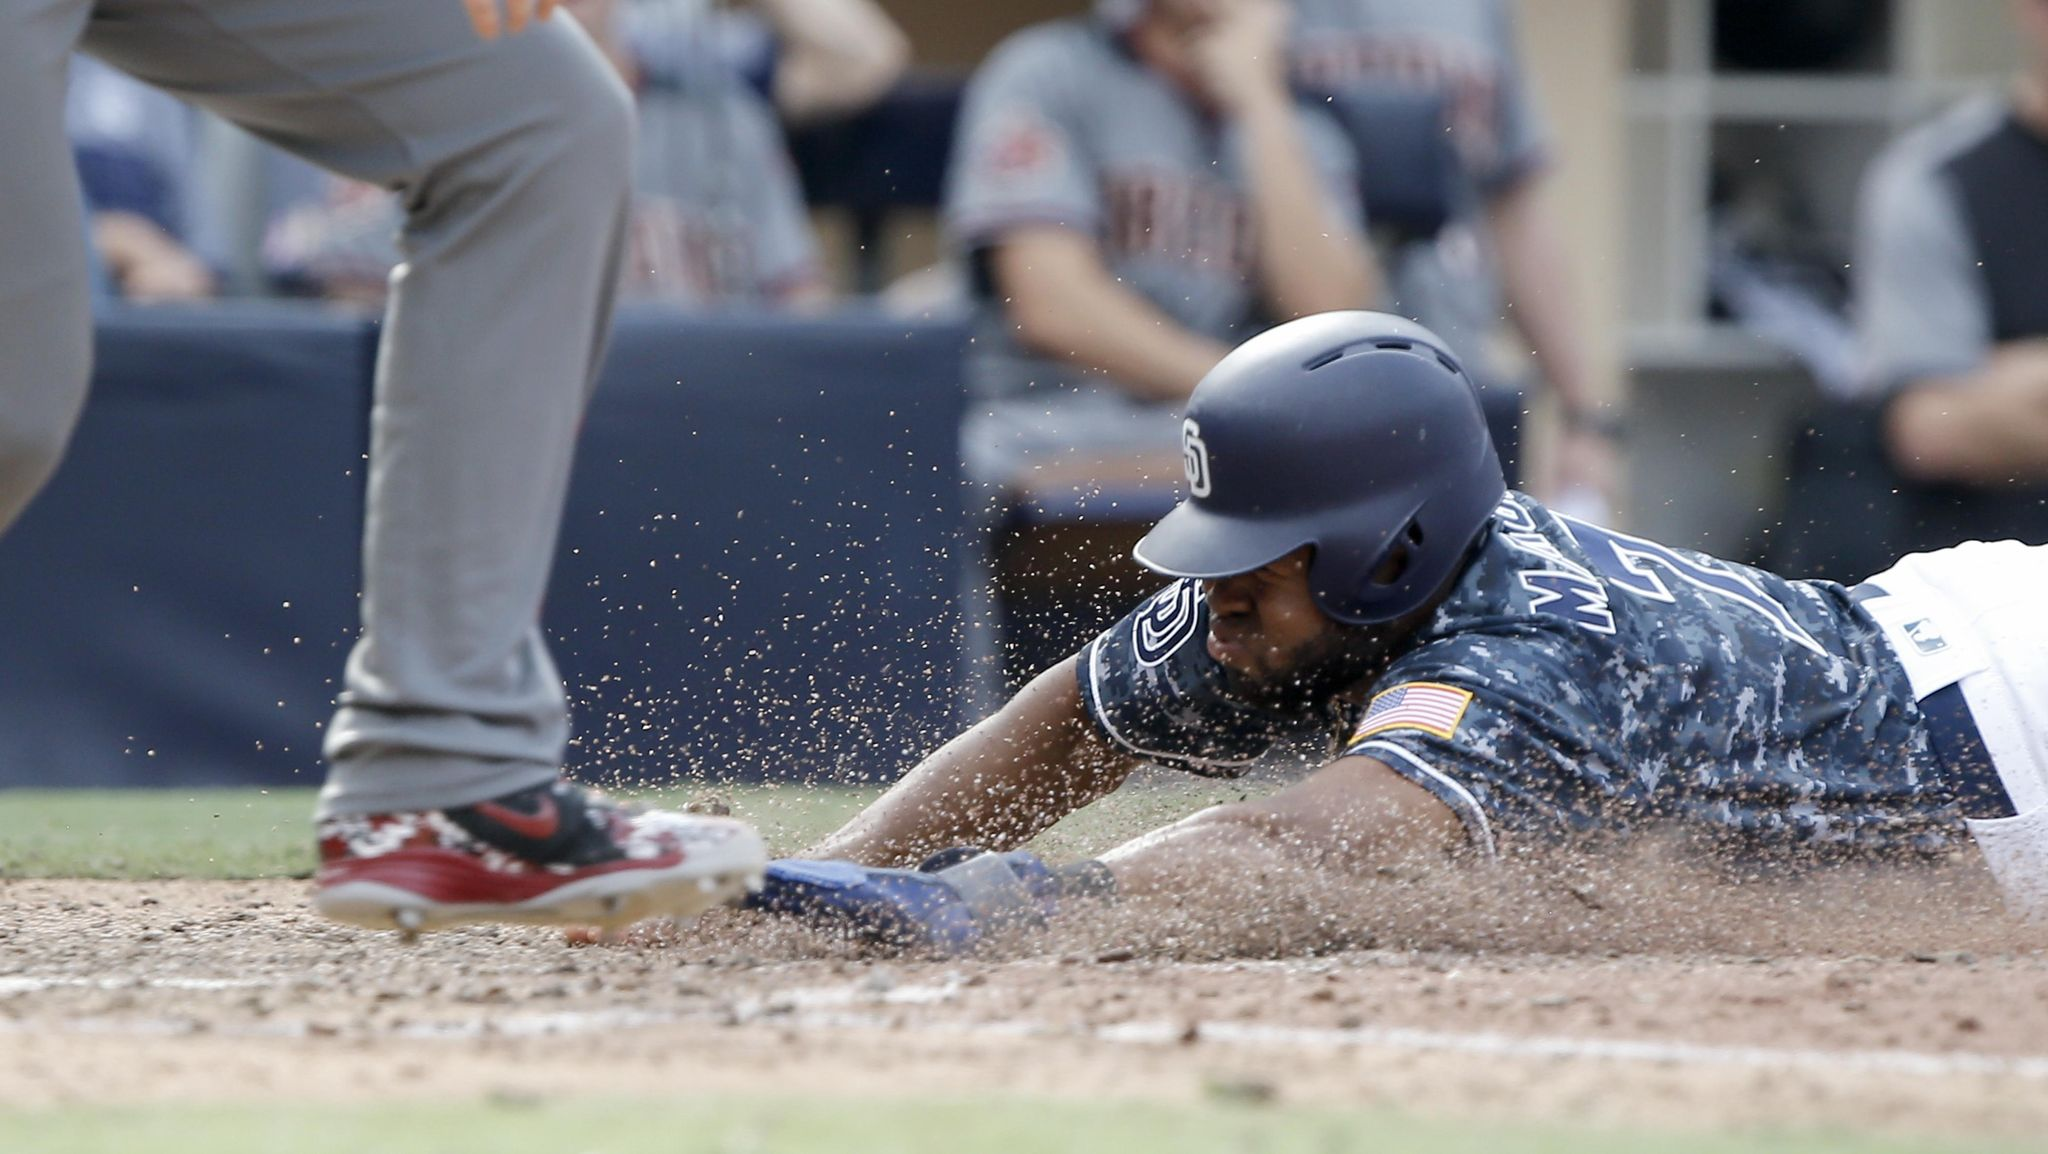 Diamondbacks_padres_baseball_70726_s2048x1154